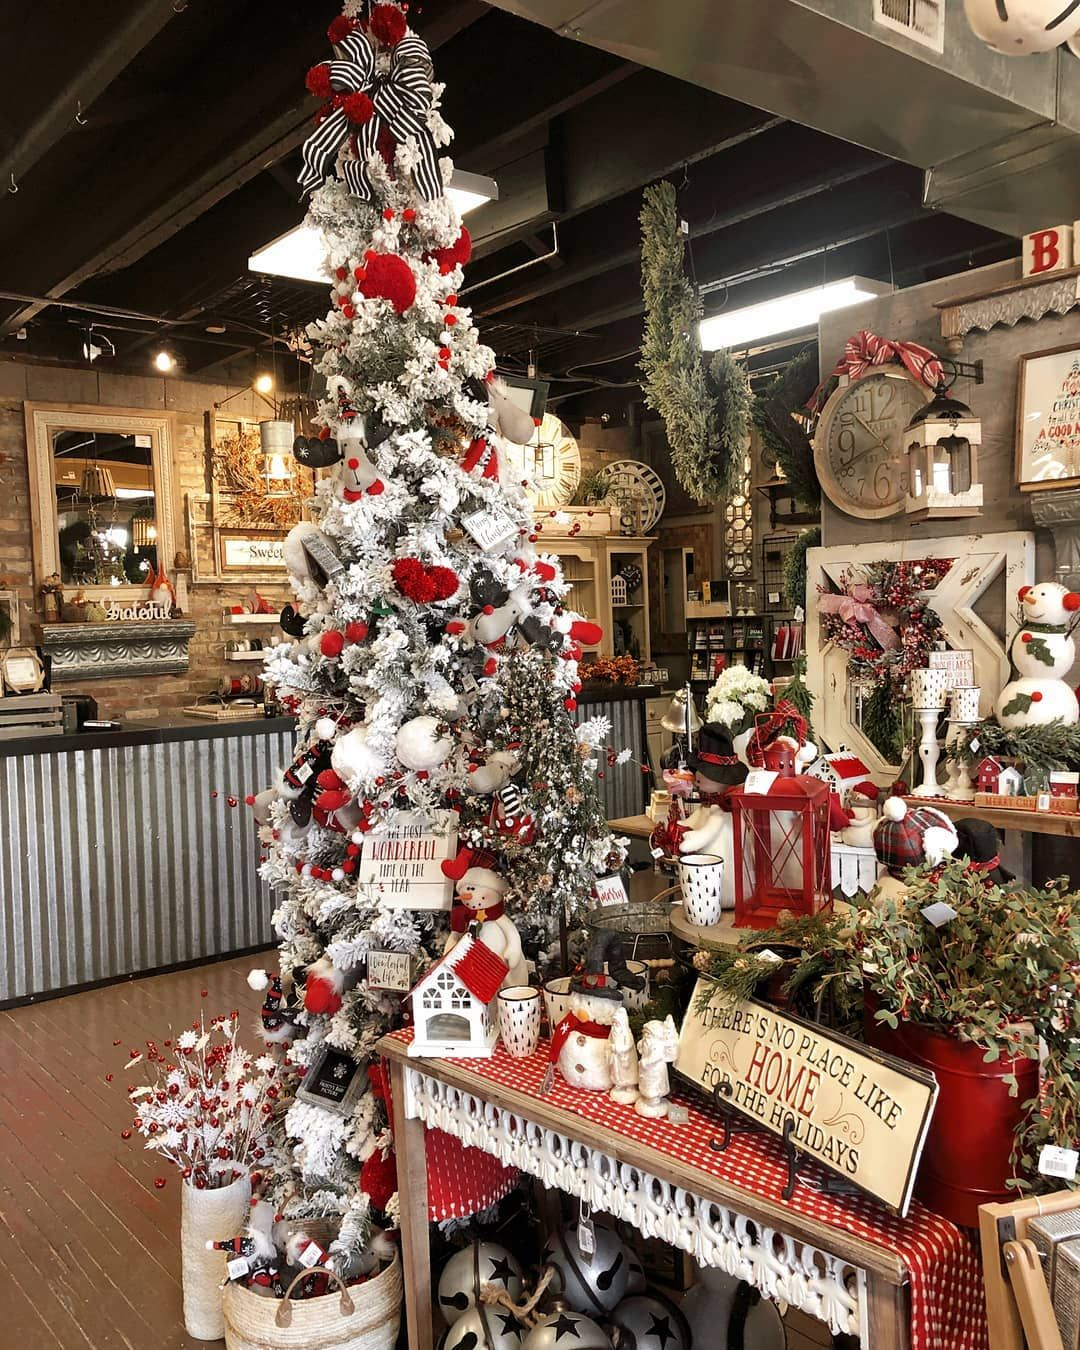 Did You Know We Have Christmas Trees 4 Sale We Are Offering A Couple Of Different Styles This Christmas Tree Decorations Tree Decorations Gorgeous Christmas